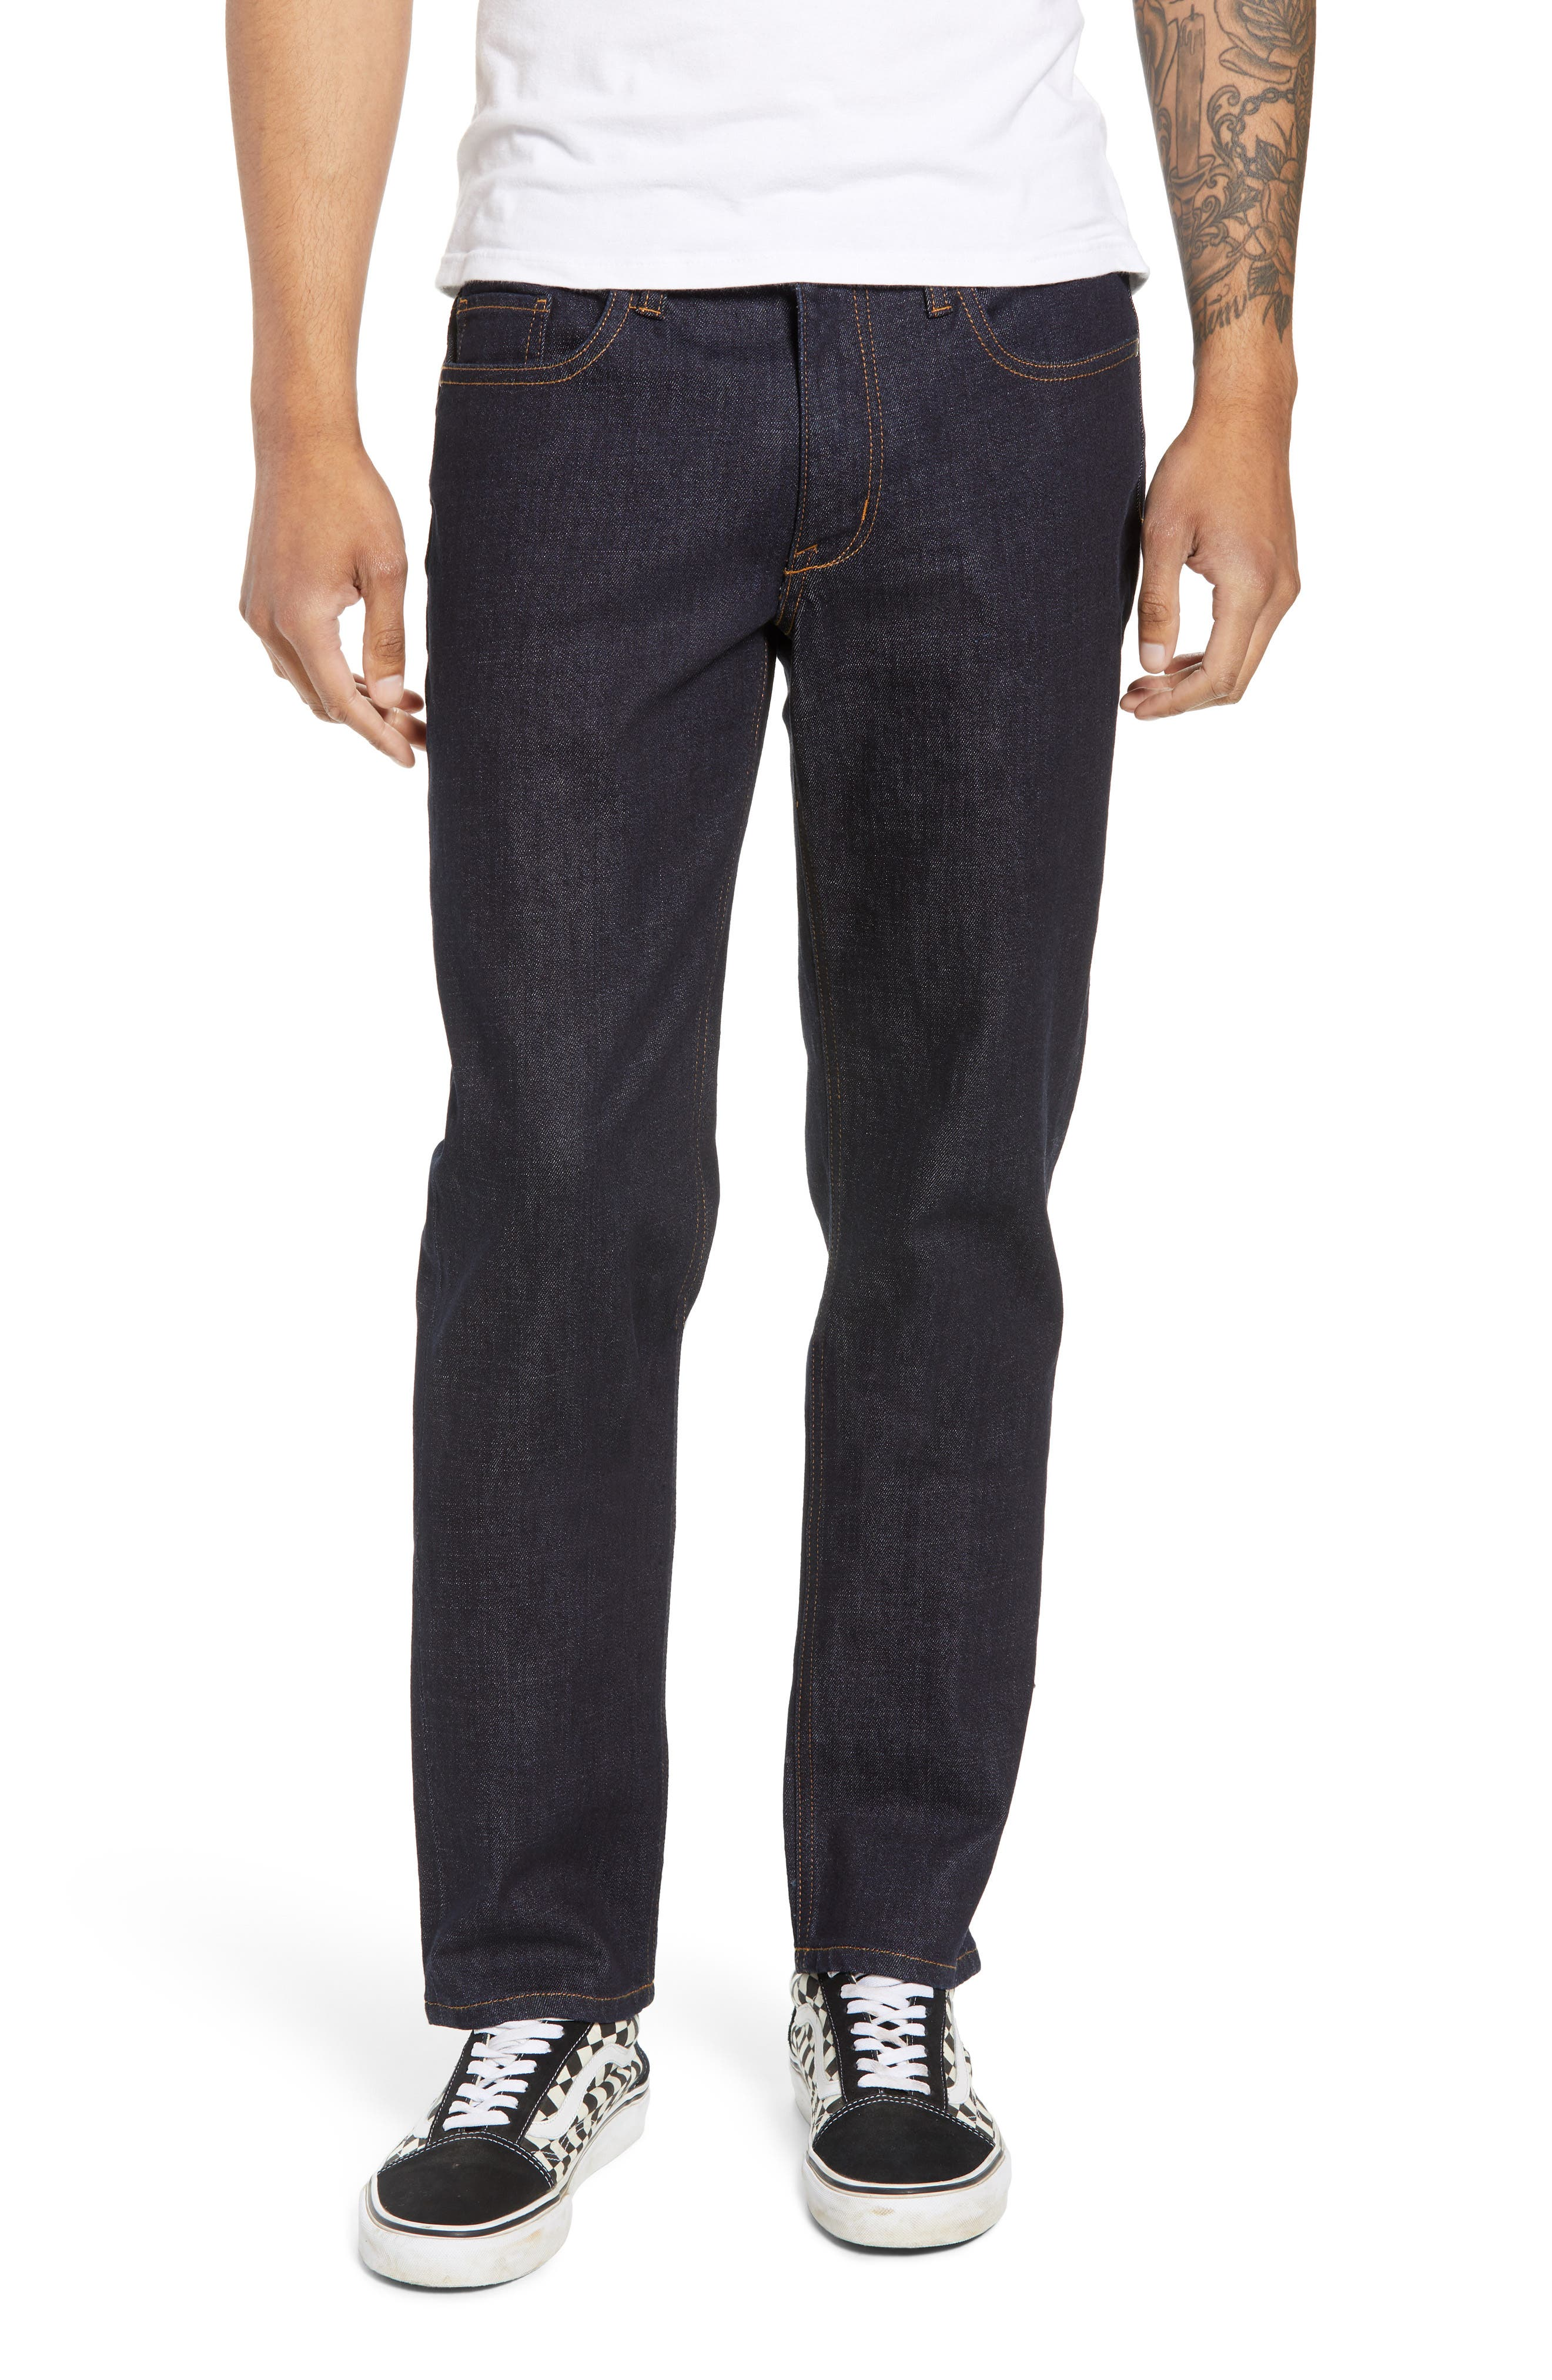 THE RAIL Stretch Slim Leg Jeans, Main, color, BLUE PERRY WASH